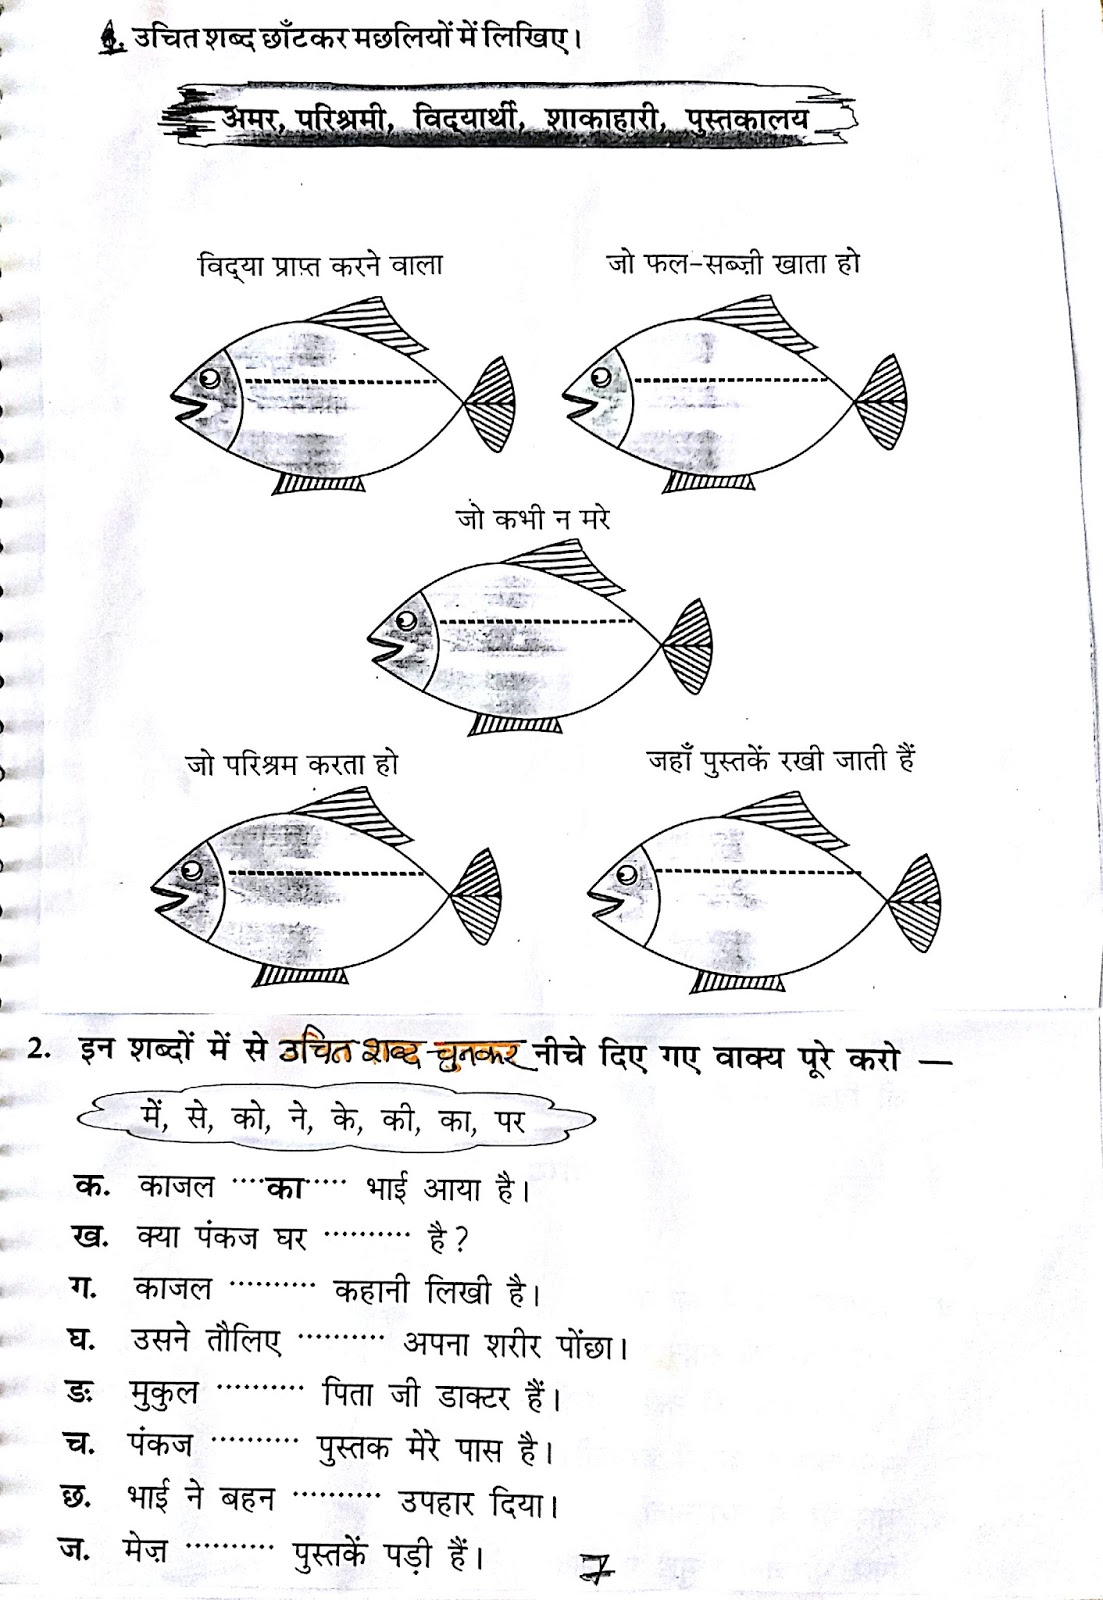 Hindi Grammar Worksheets For Class 5 Icse